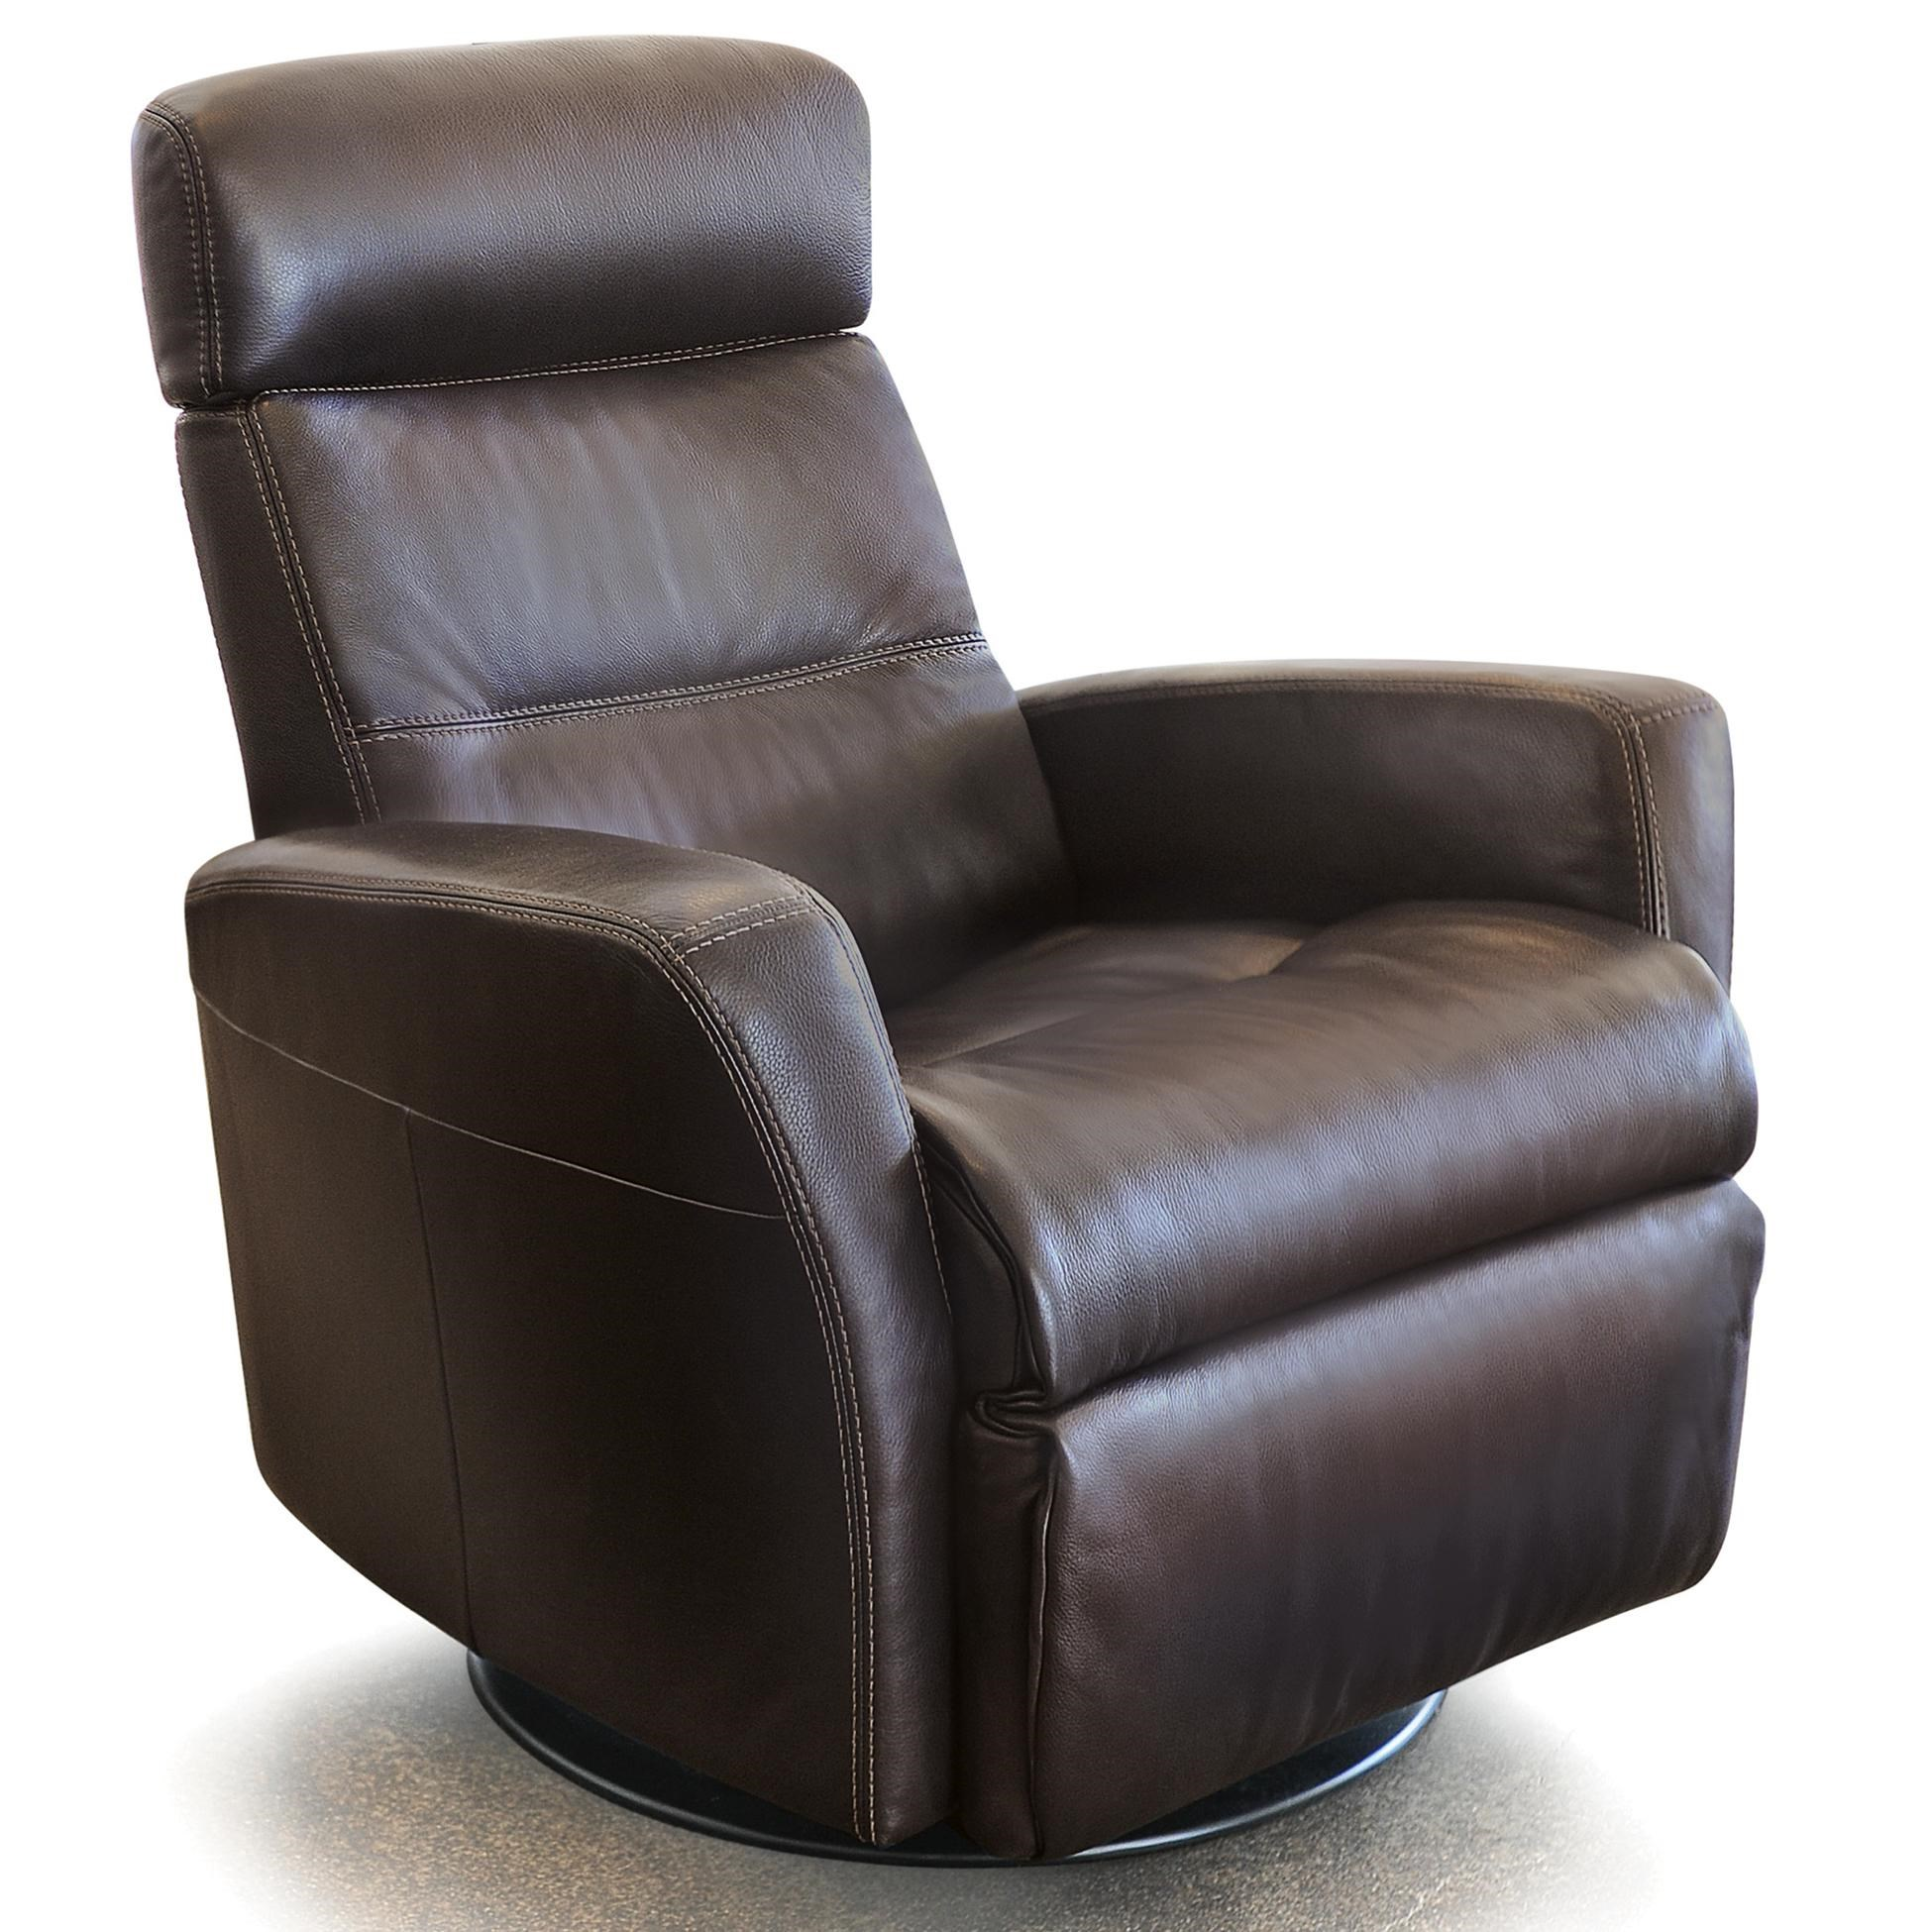 Recliners Modern Divani Recliner Relaxer With Swivel Base